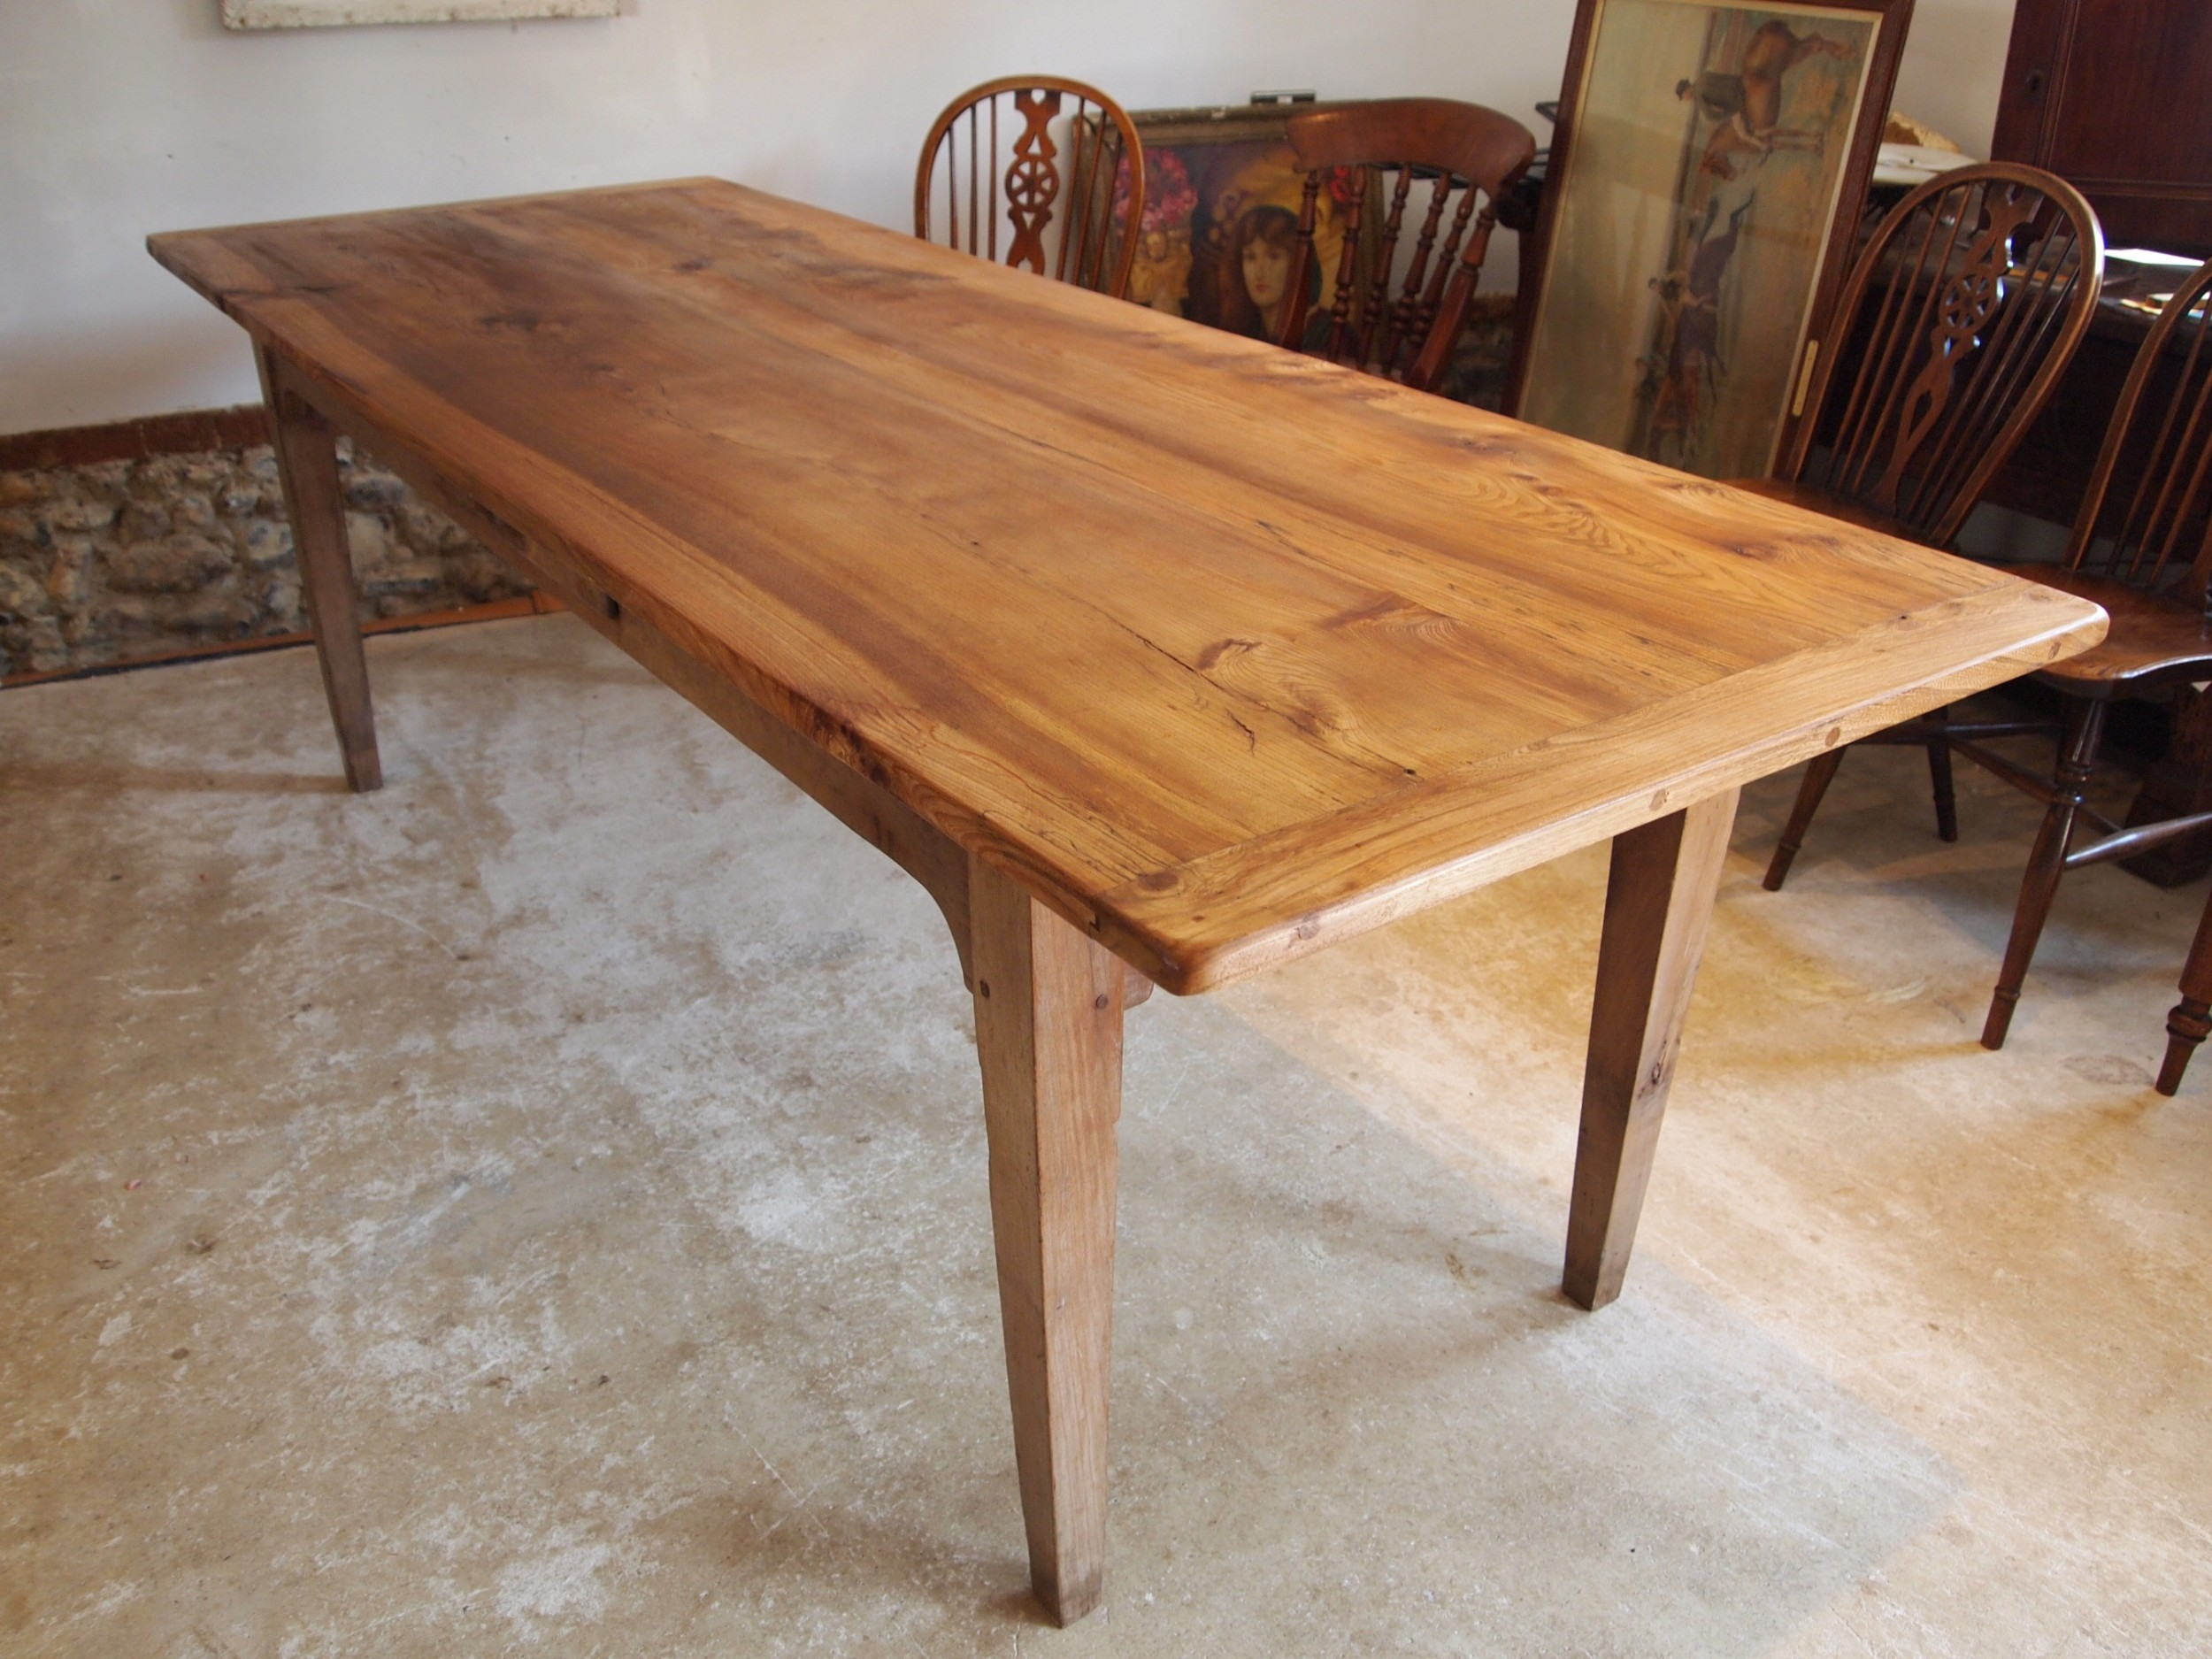 table refectory farmhouse french elm dining c1870